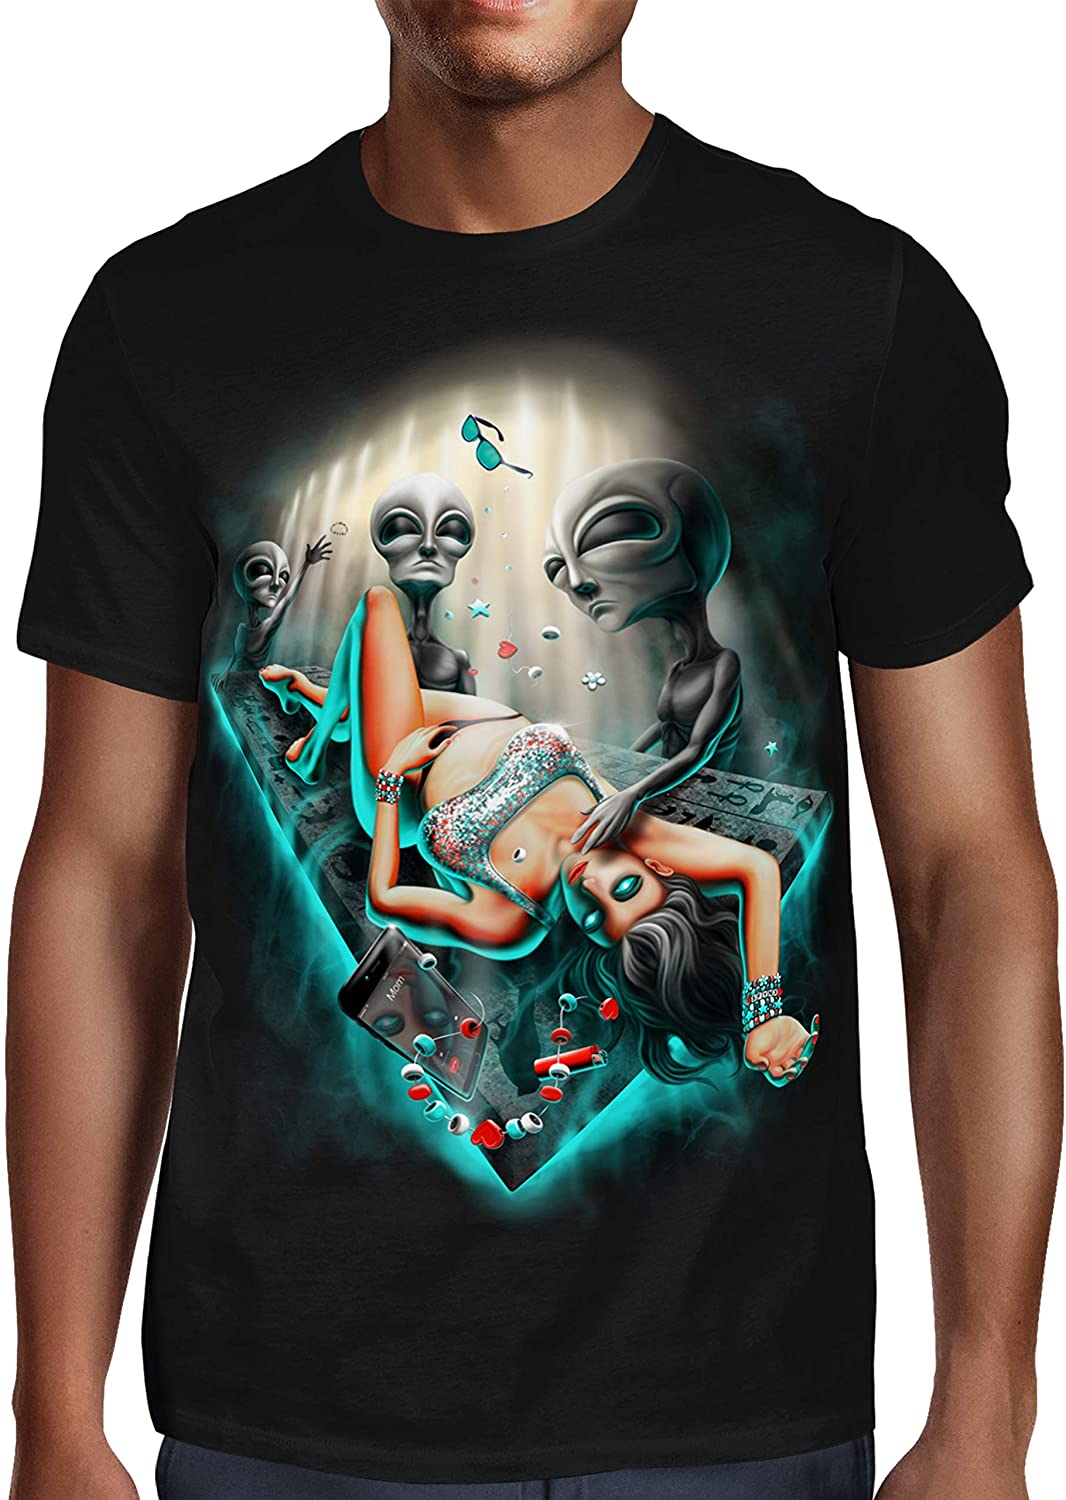 SFYNX 'PLURduction' Alien Rave T Shirt - Glow in The Dark EDM Clothing - Blacklight Reactive Mens Tee